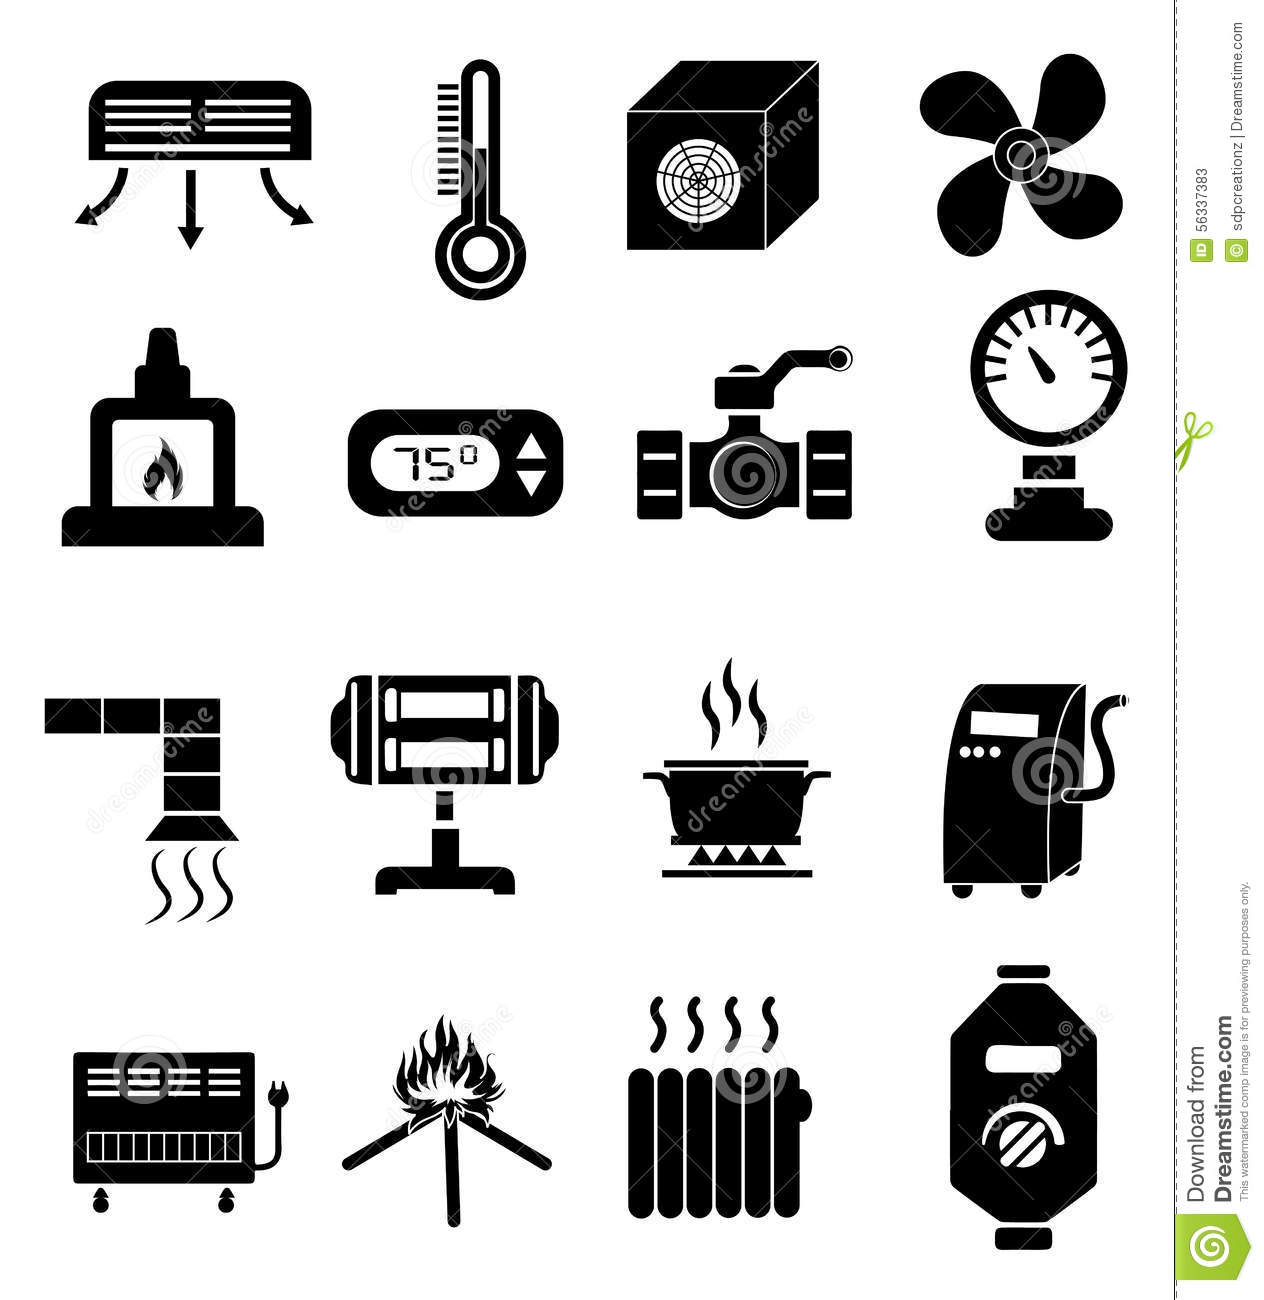 Process pipe symbols in addition Stock Illustration Heating Icons Set Black Image56337383 together with Env introduction also Bi3010 additionally Multi familybuild. on hvac system design